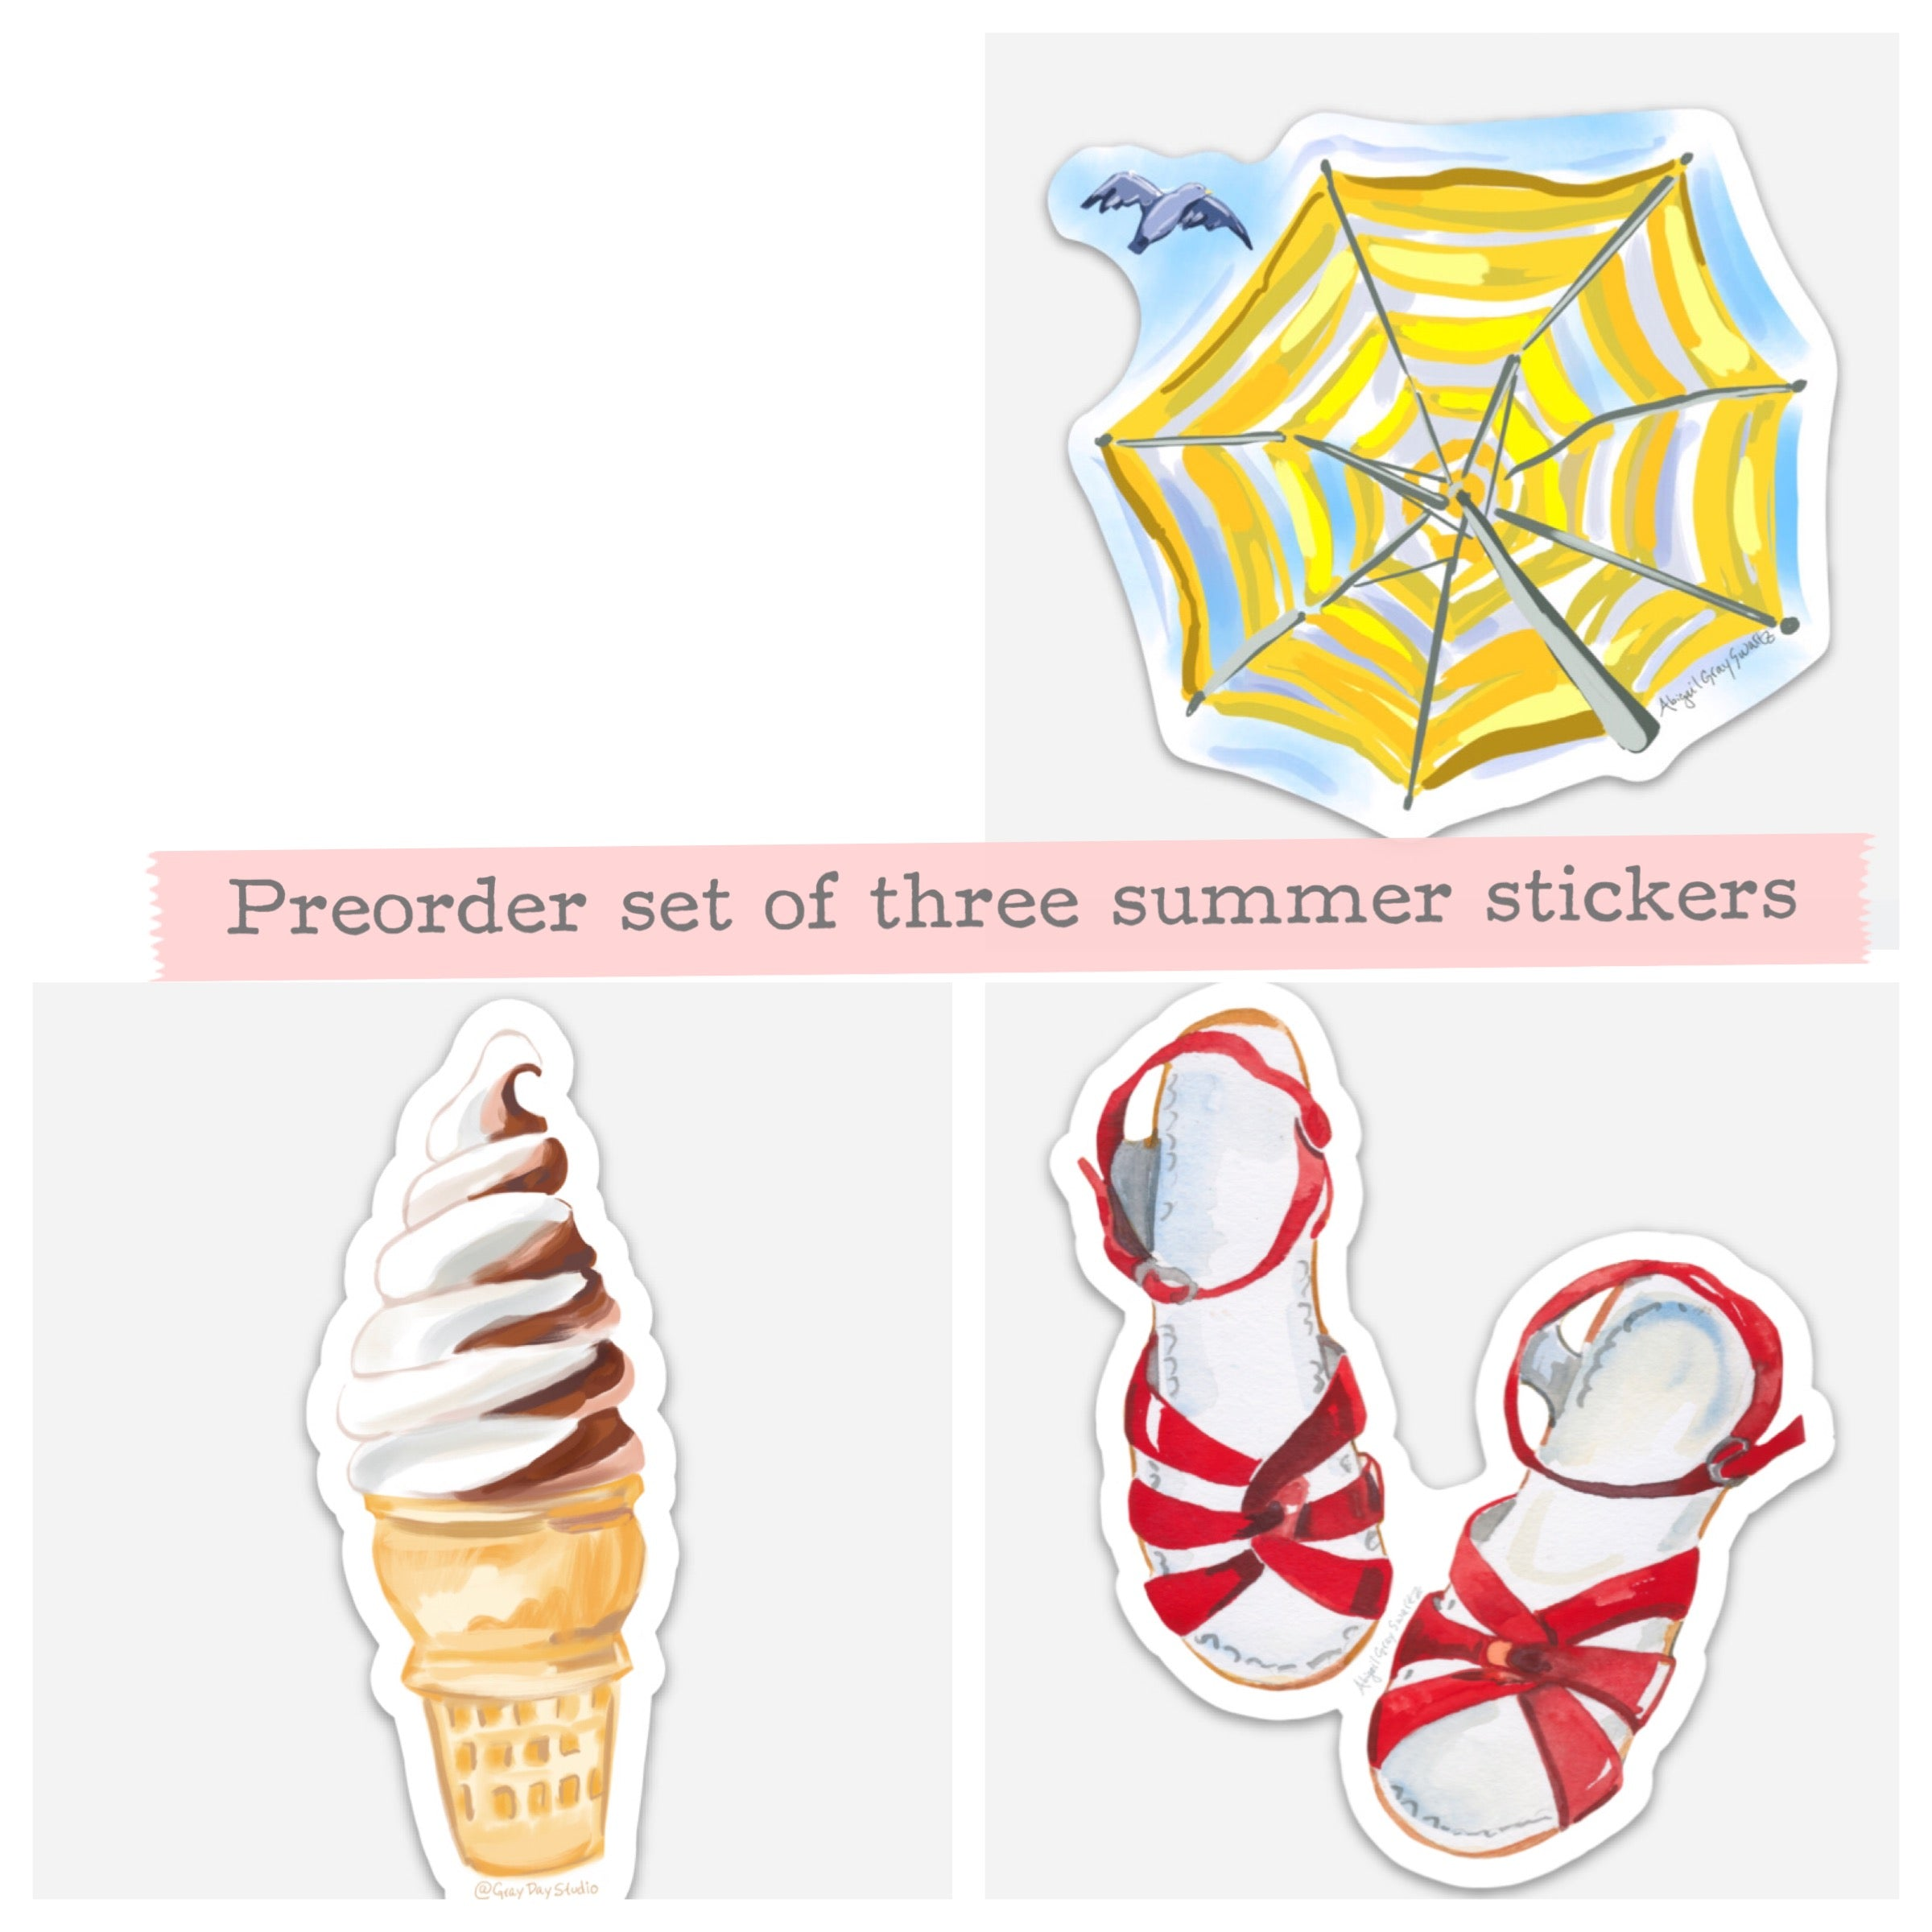 Set of three summer stickers, Stickers & Magnets